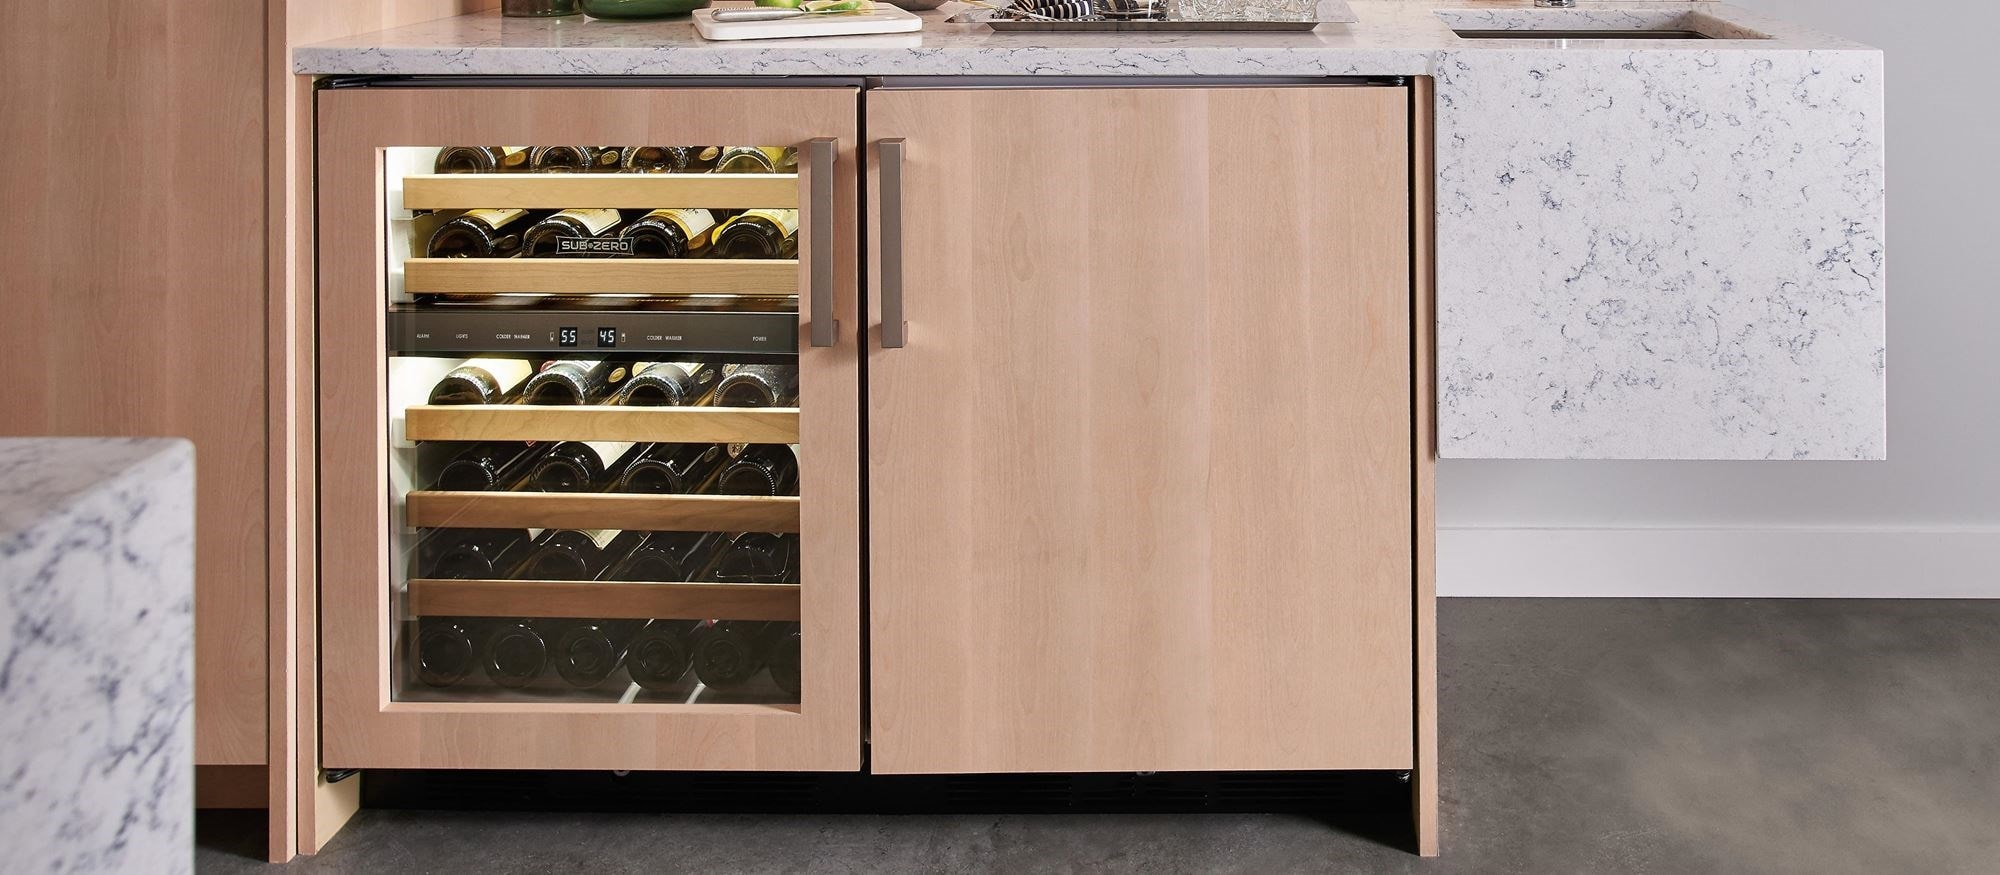 "Sub-Zero 24"" Undercounter Wine - Panel Ready (UW-24/O)"